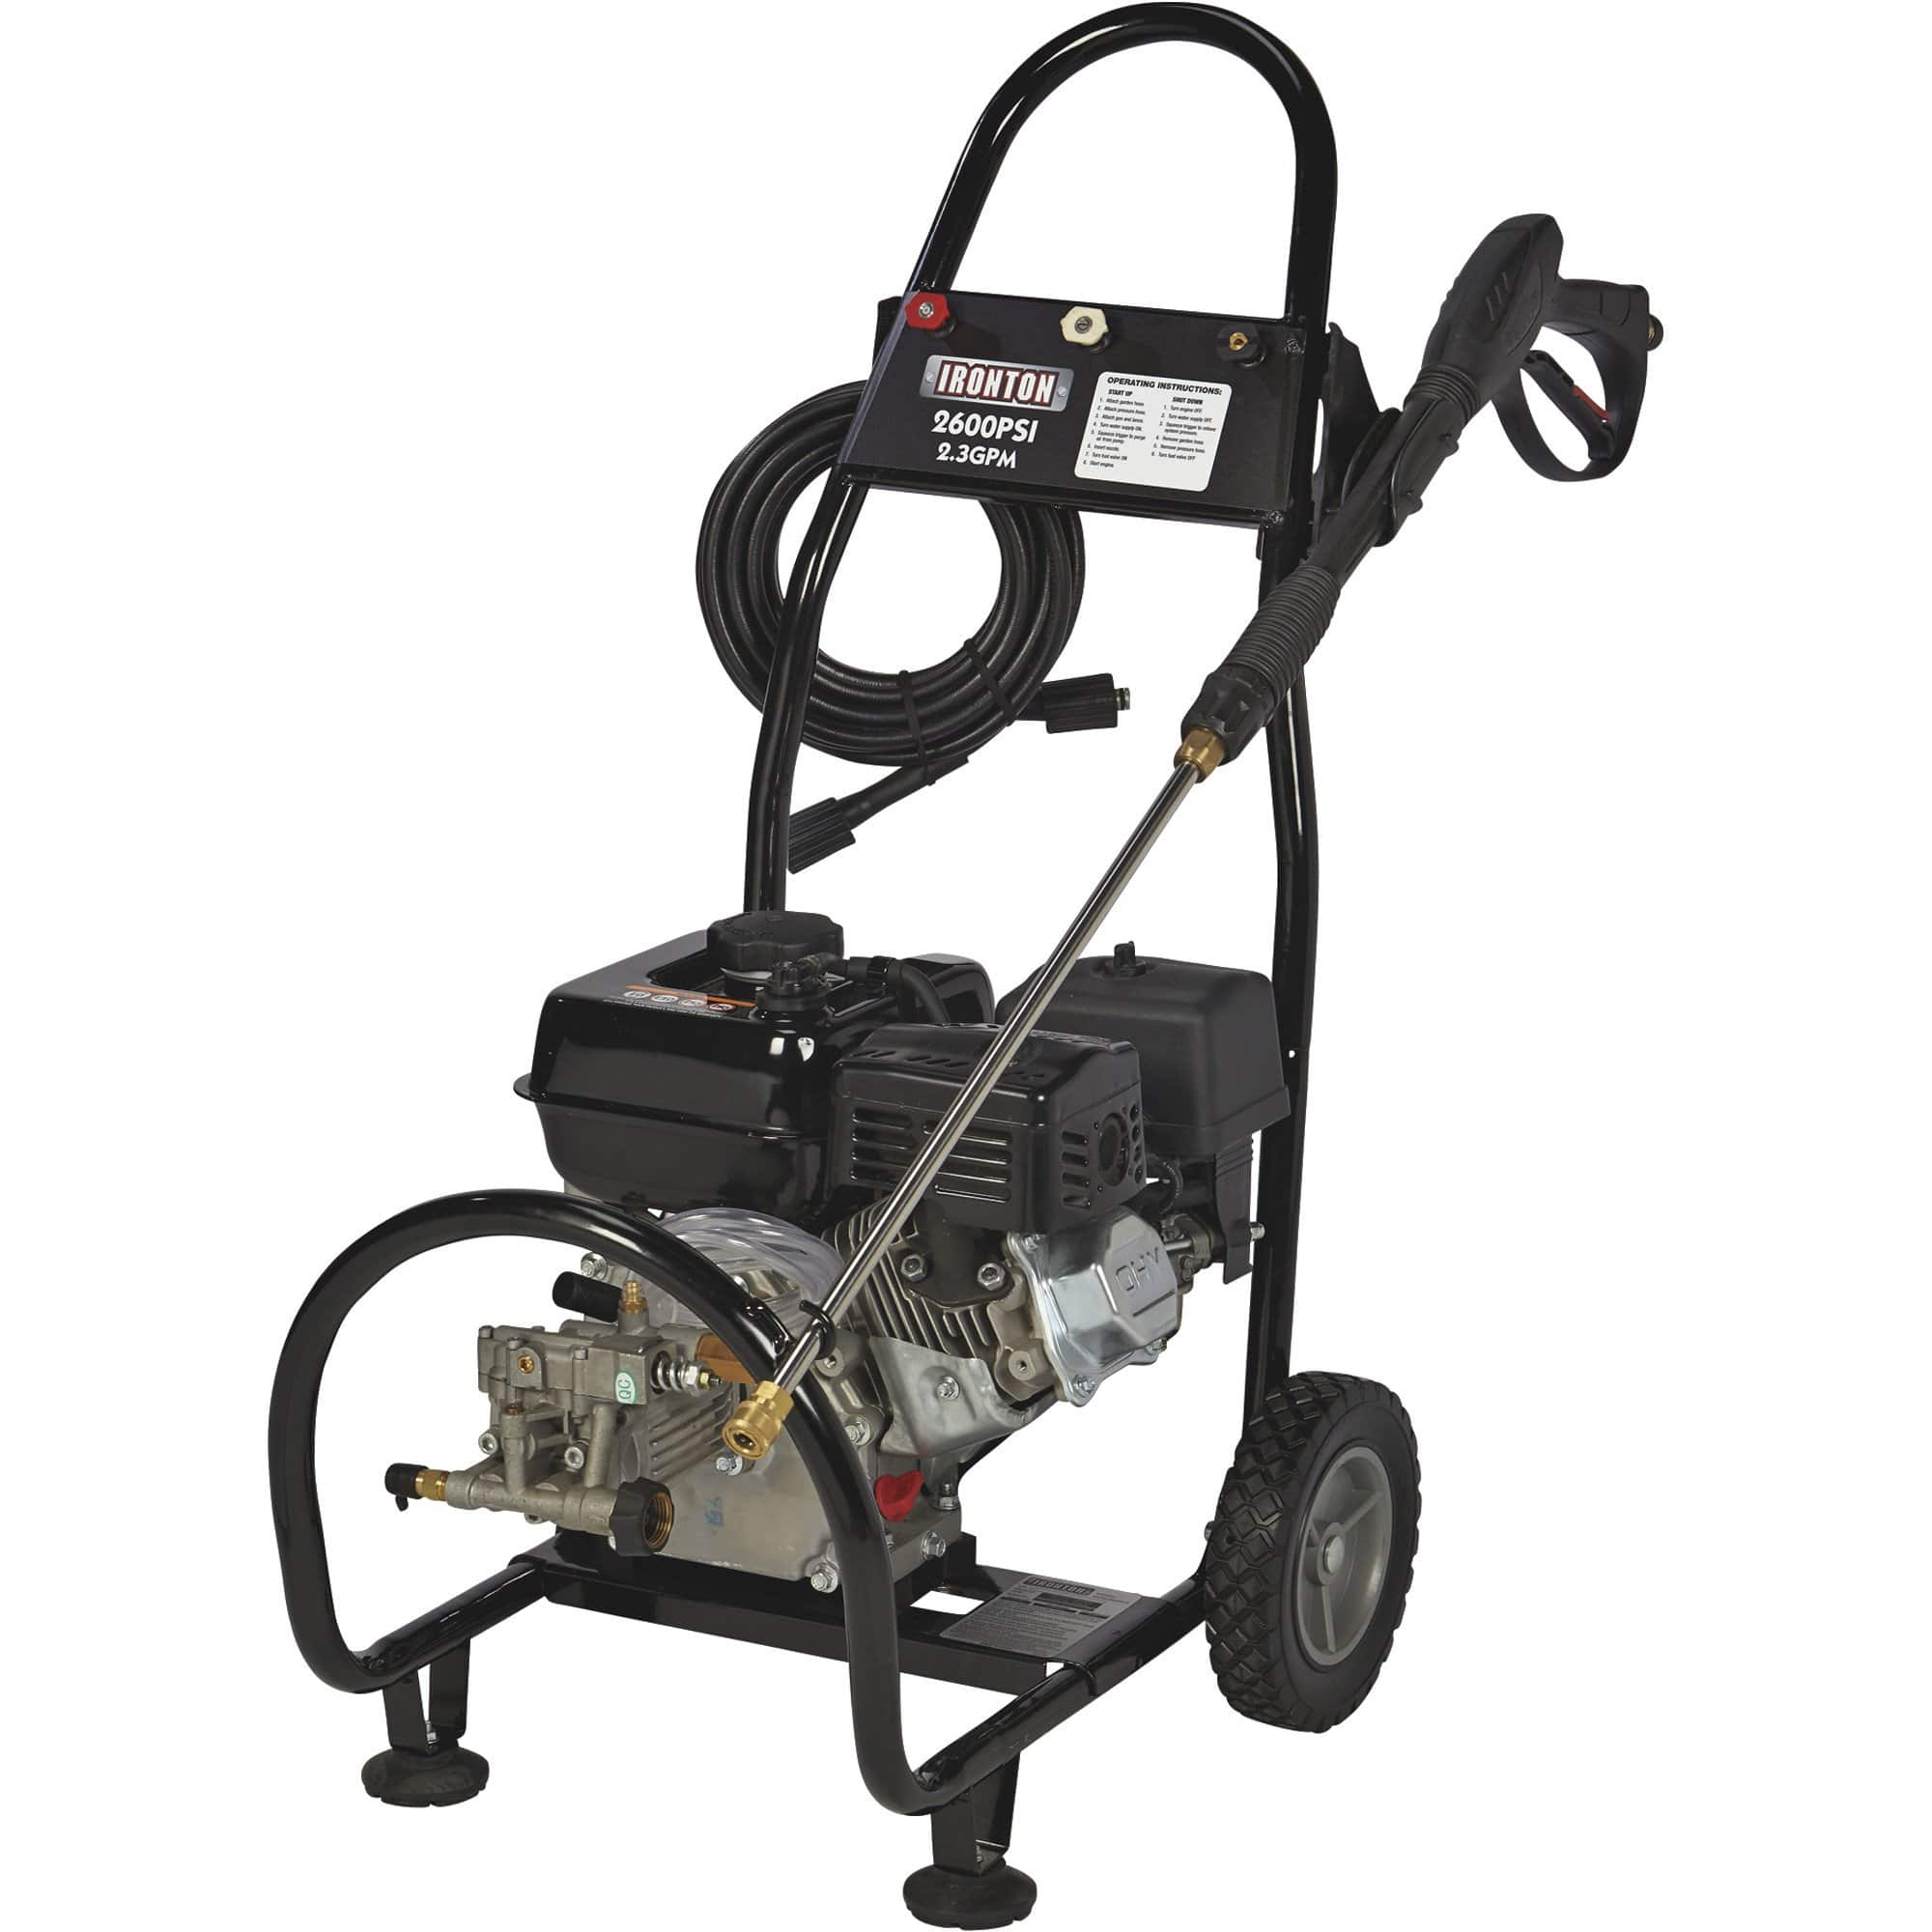 Ironton Gas Cold Water Pressure Washer — 2600 PSI, 2.3 GPM, Model# 87034 $180